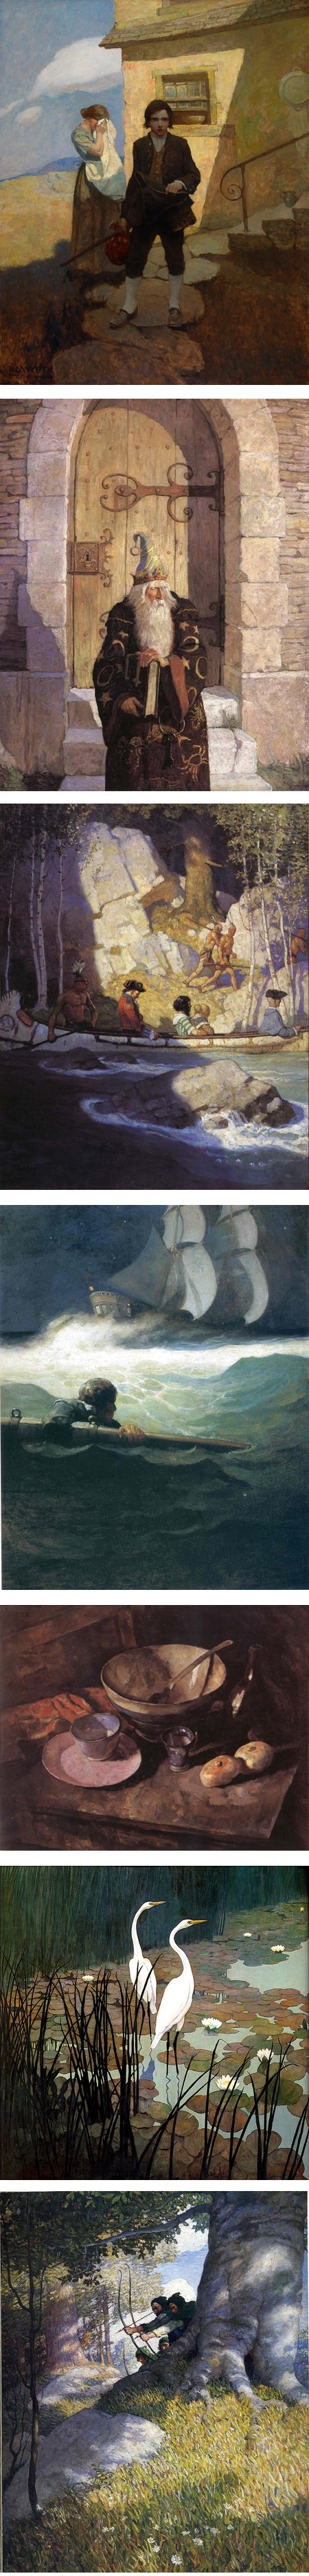 N. C. Wyeth illustrations and landscape paintings